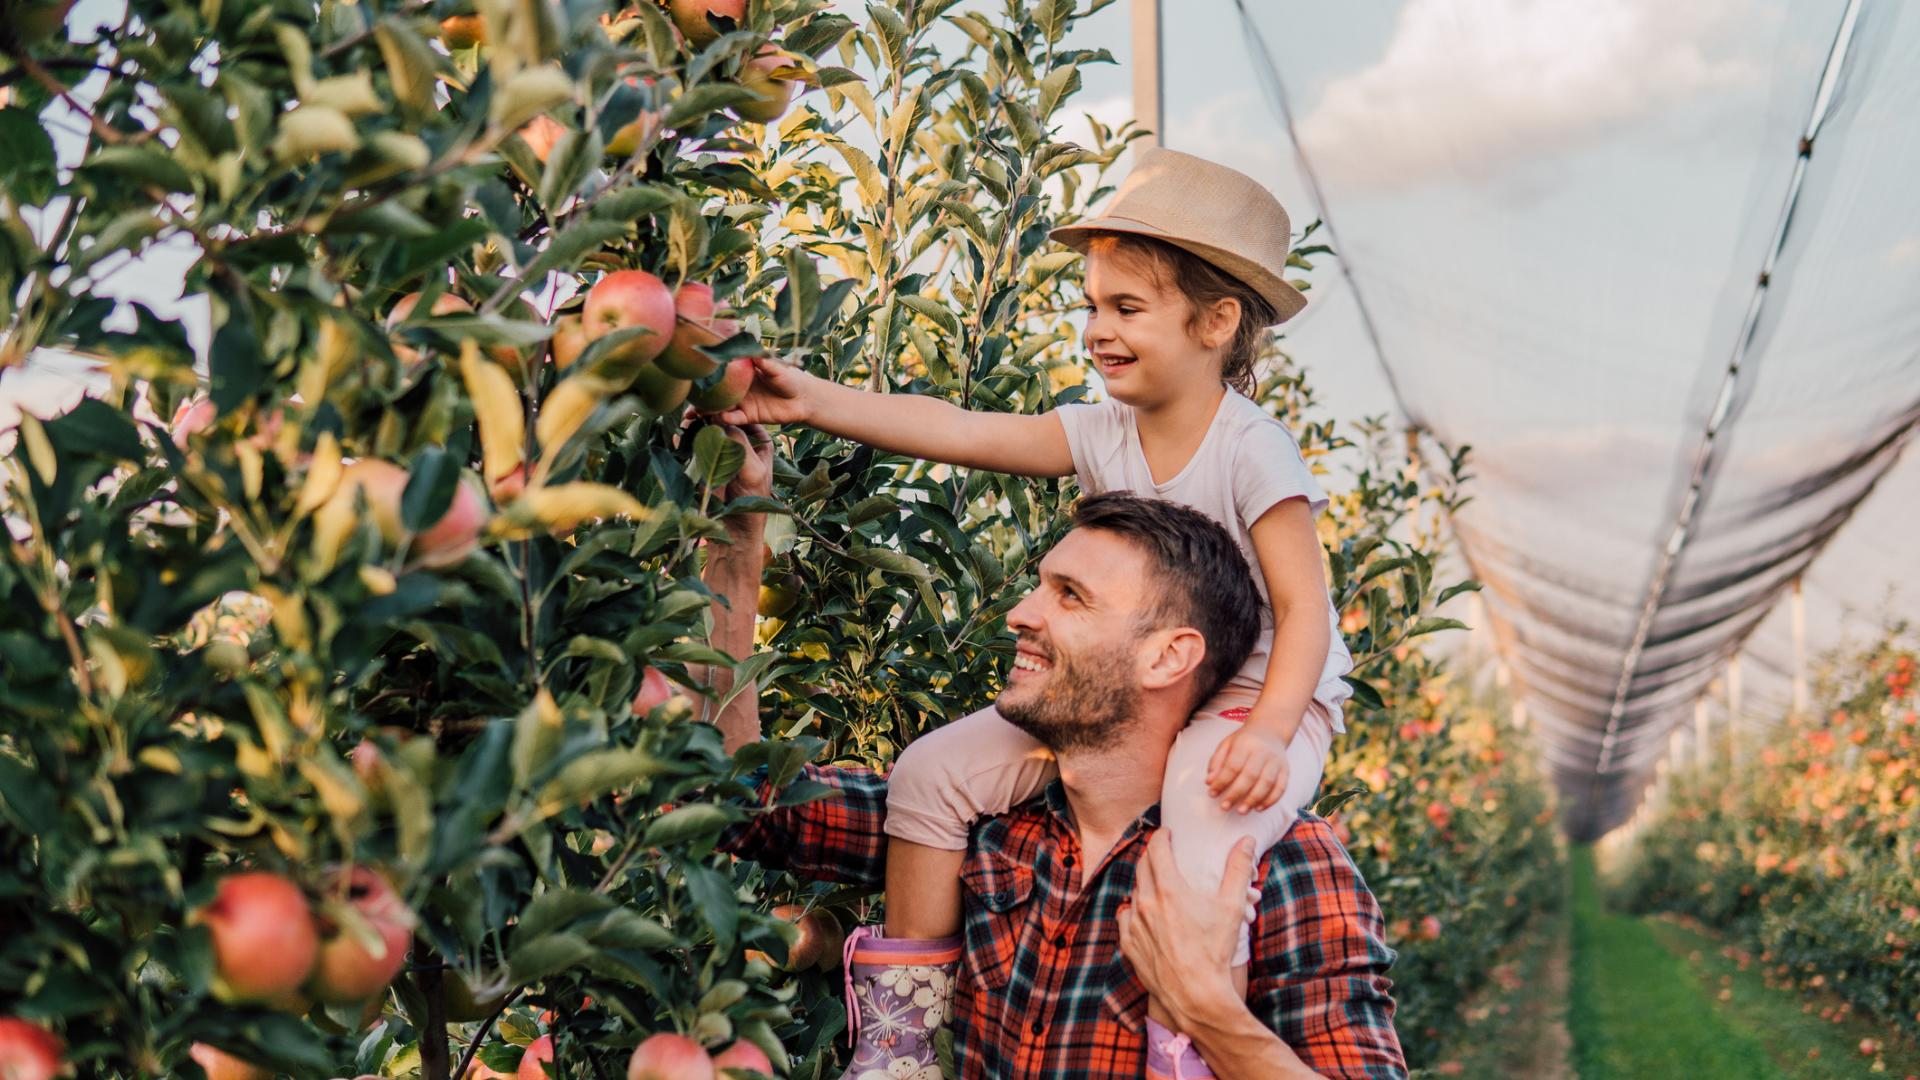 Father and Daughter Picking Apples